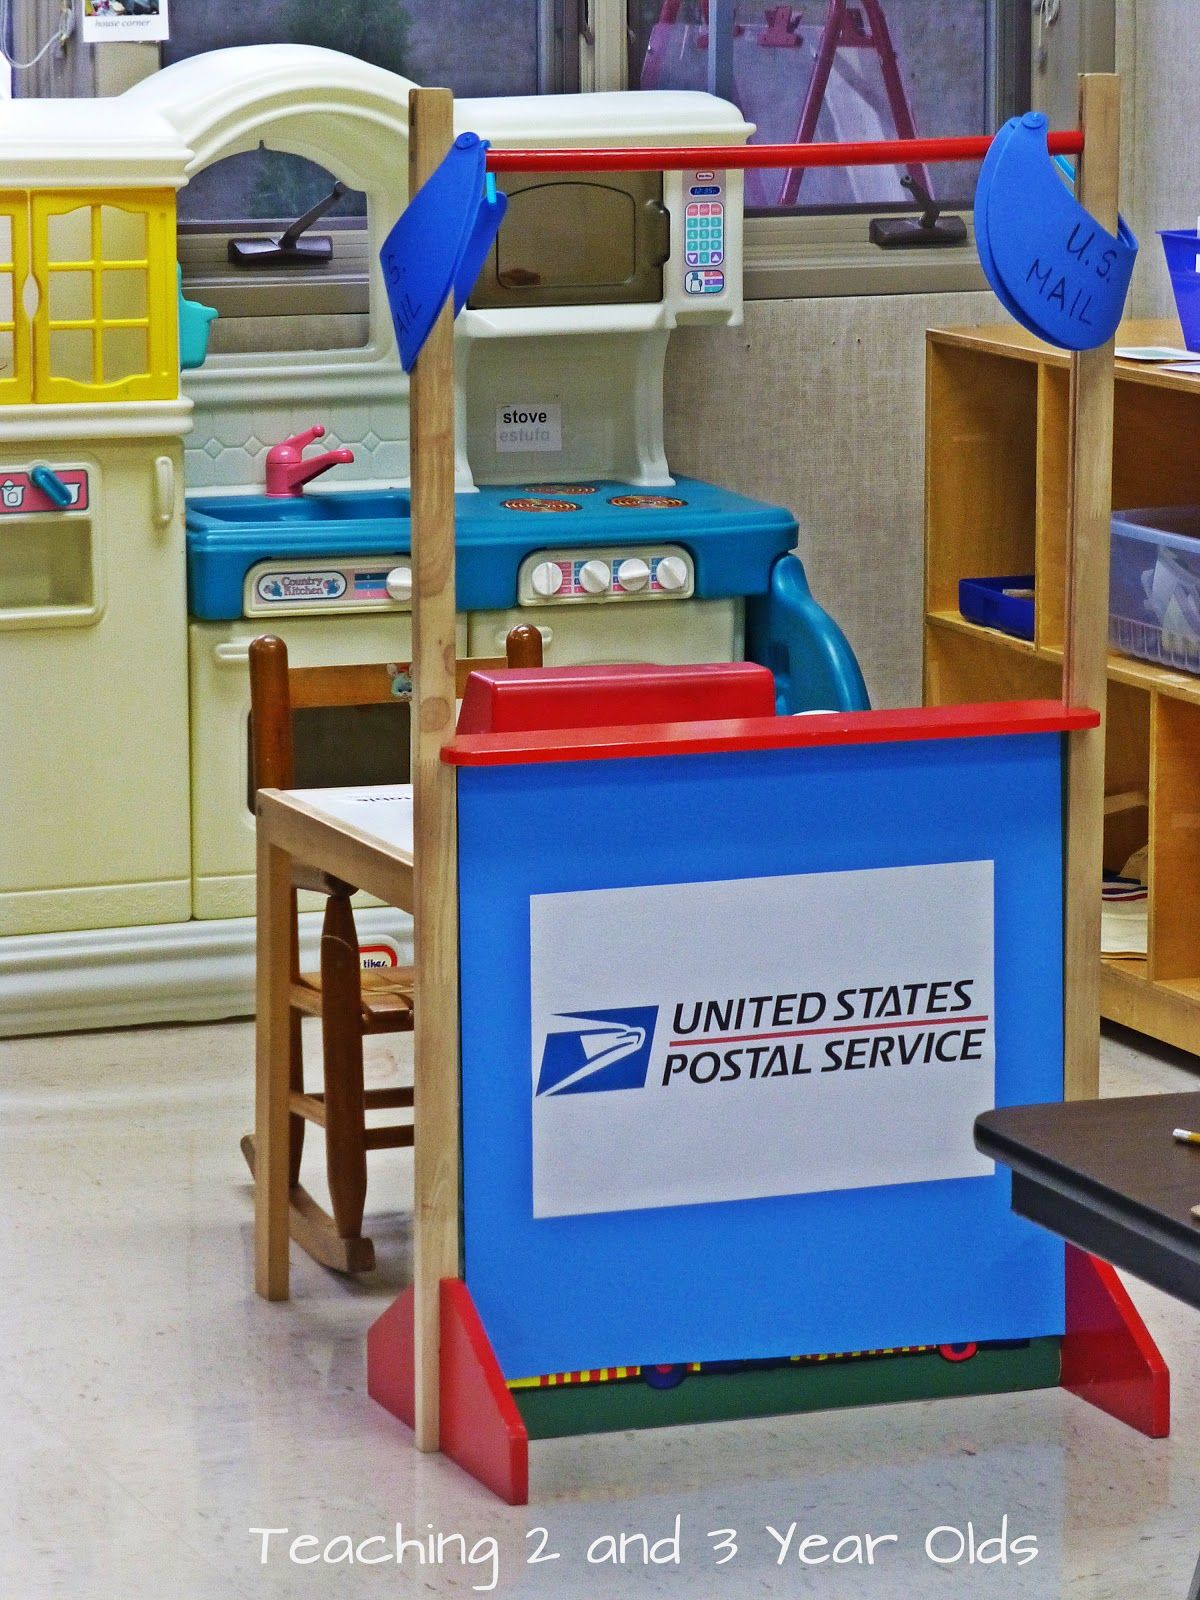 Teaching 2 And 3 Year Olds Post Office